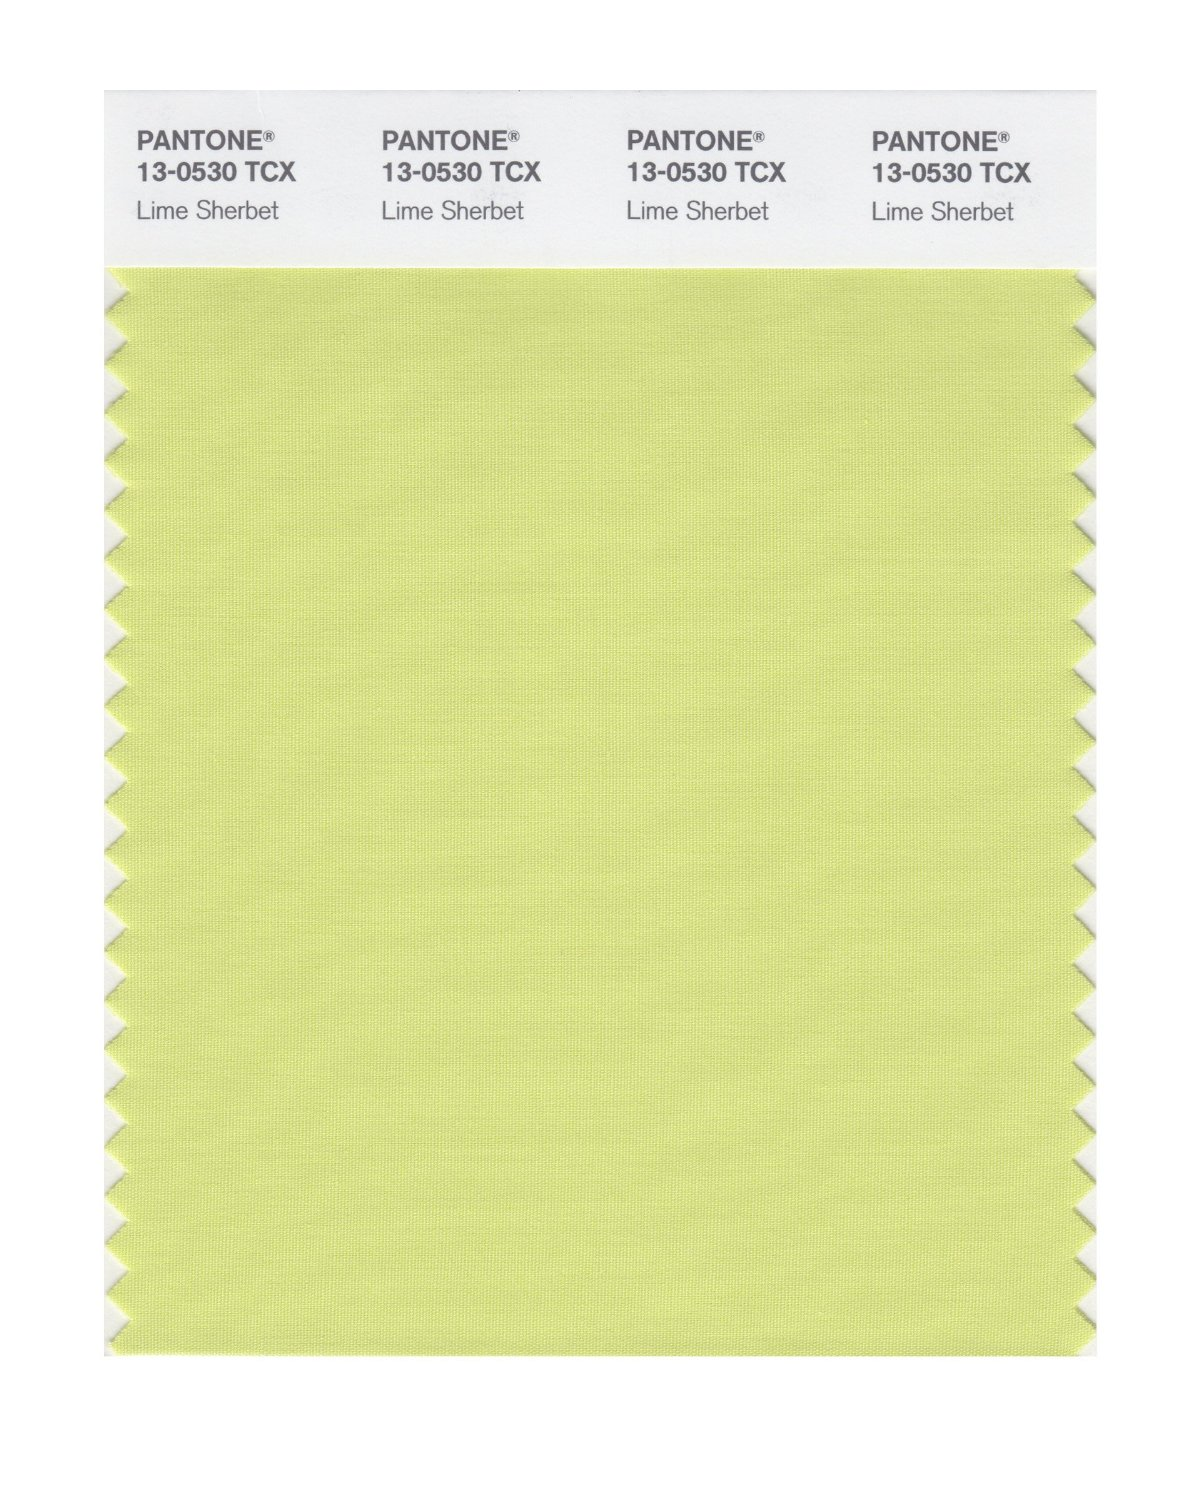 Pantone Smart Swatch 13-0530 Lime Sherbert